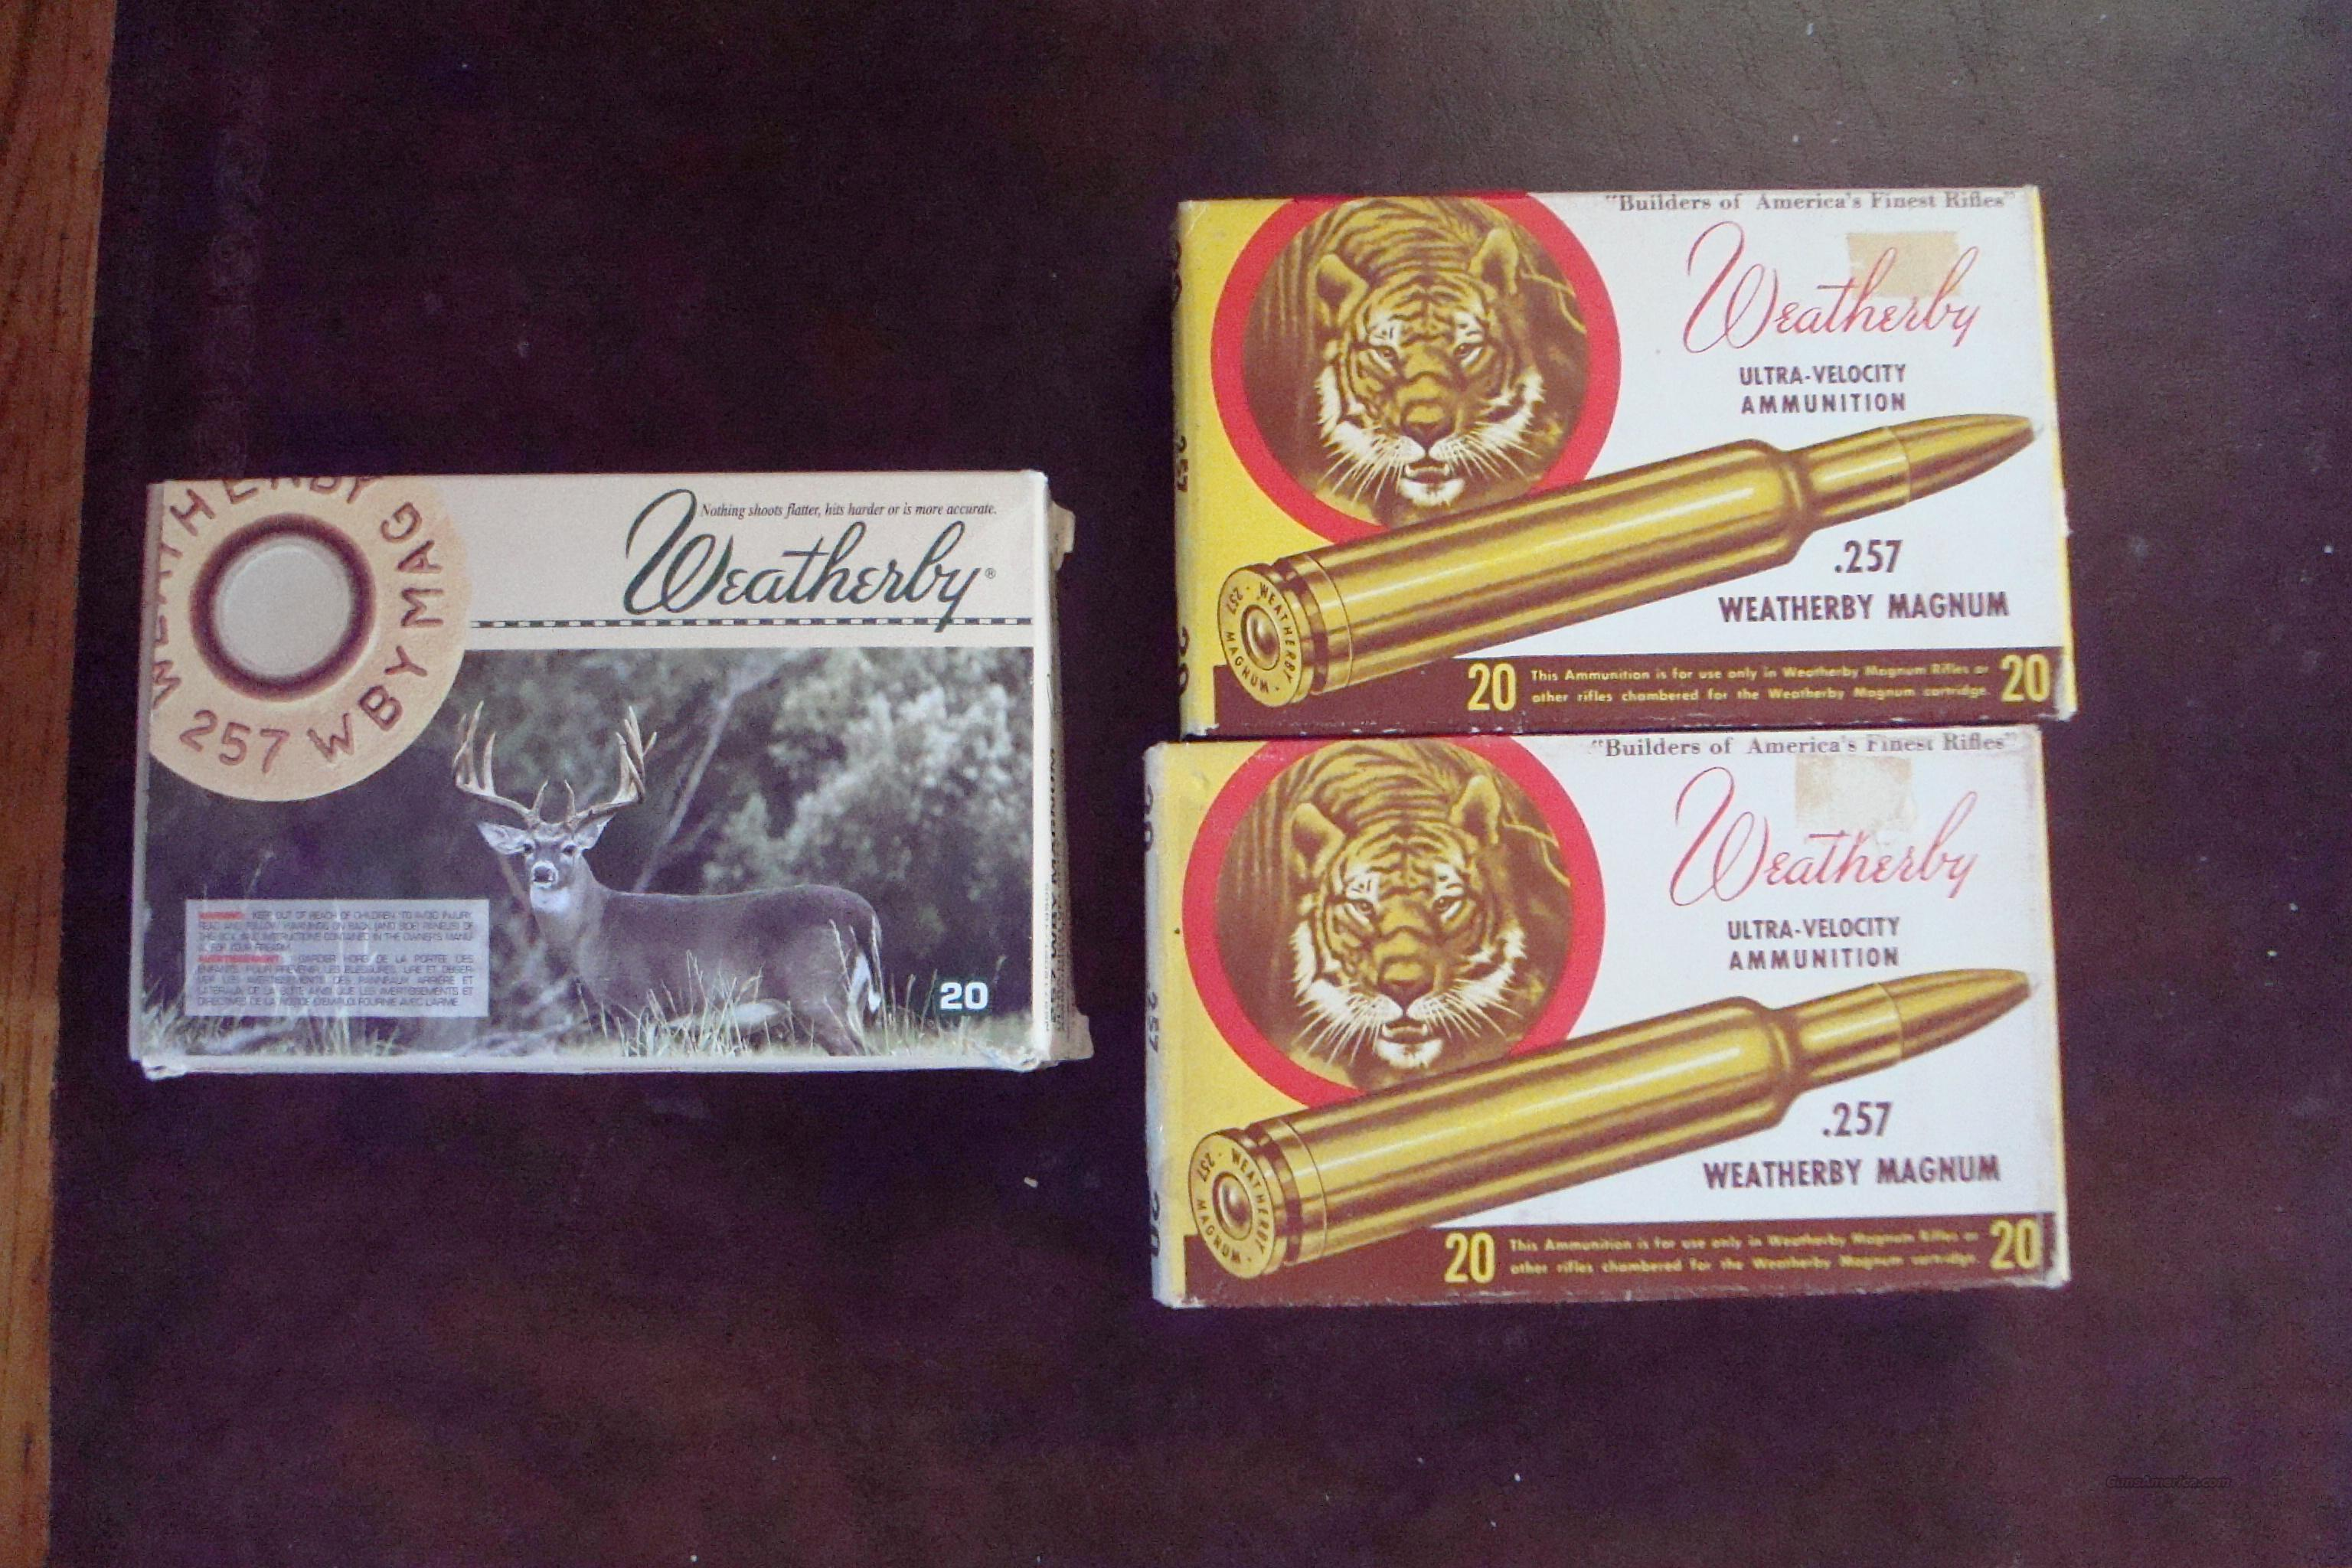 257 Weatherby ammo  Non-Guns > Ammunition